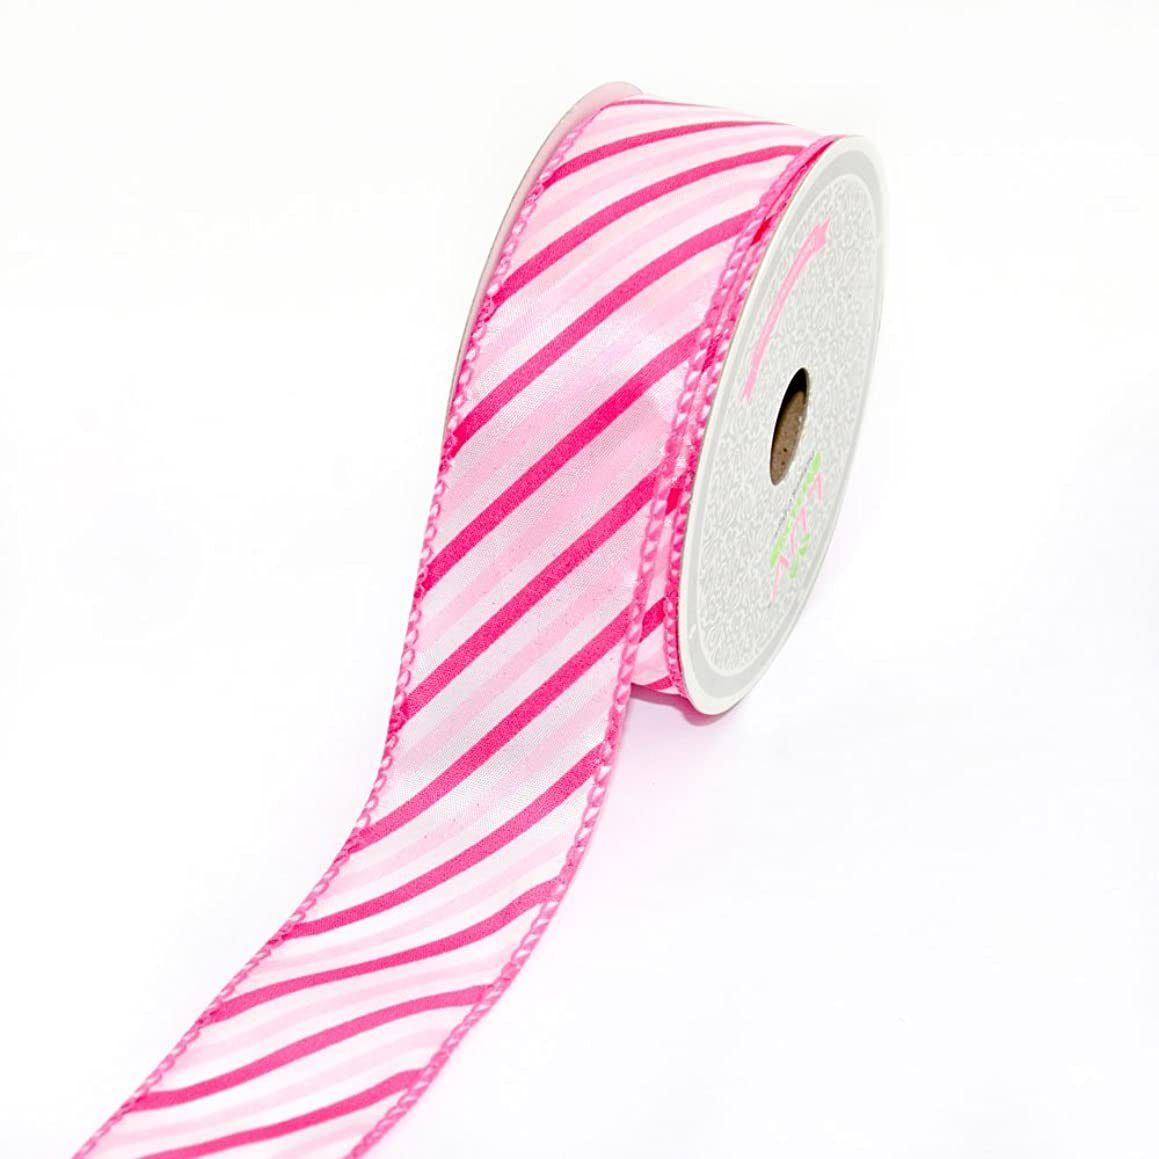 LUV RIBBONS by Creative Ideas 1-1/2-Inch Multicolor Summer Stripes Ribbon, 10-Yard, Hot Pink